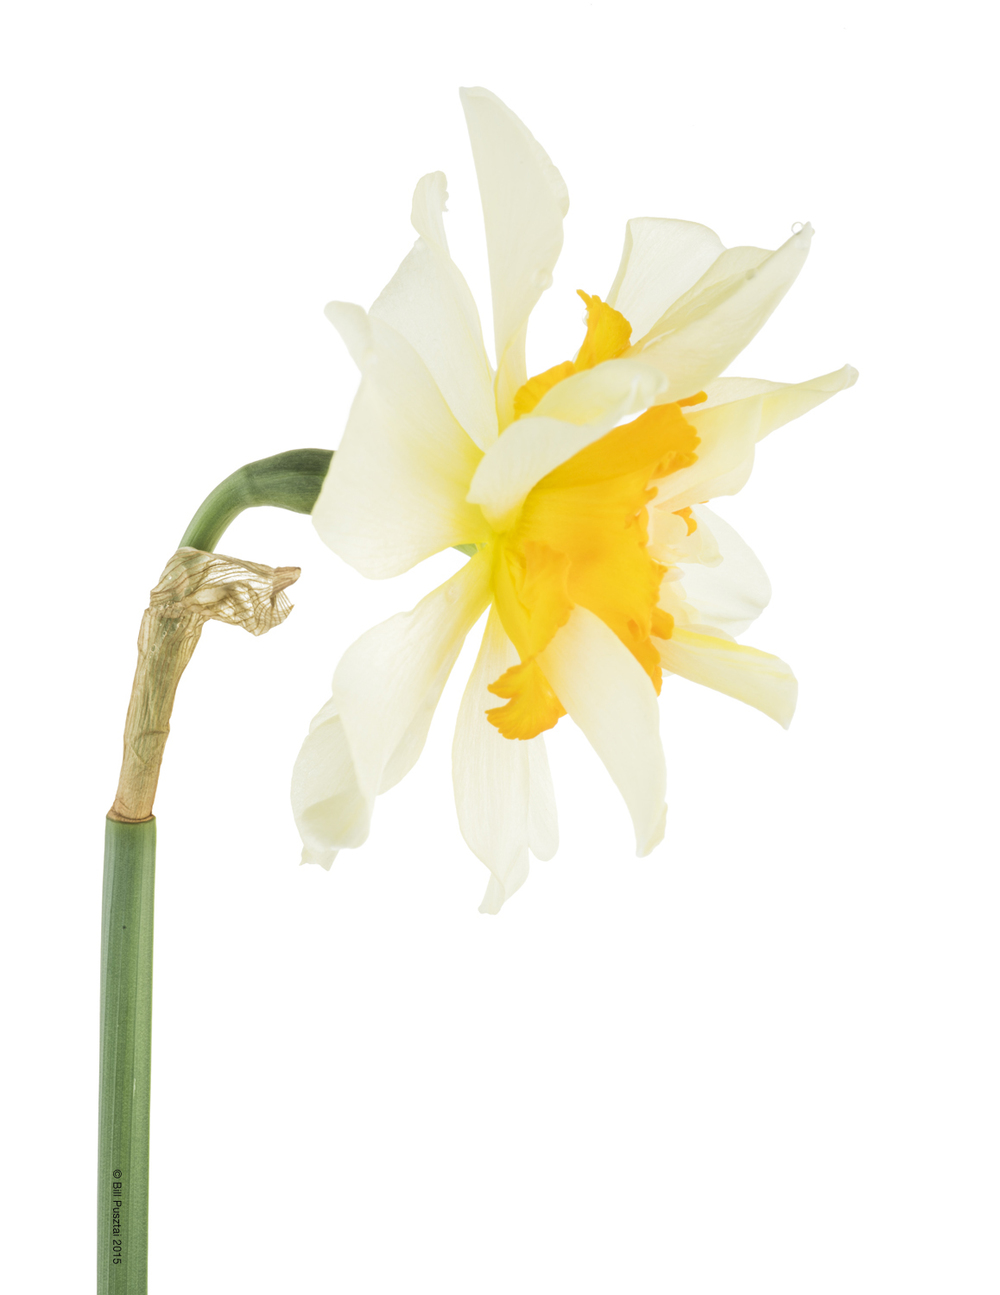 Narcissus 'Flower Drift'